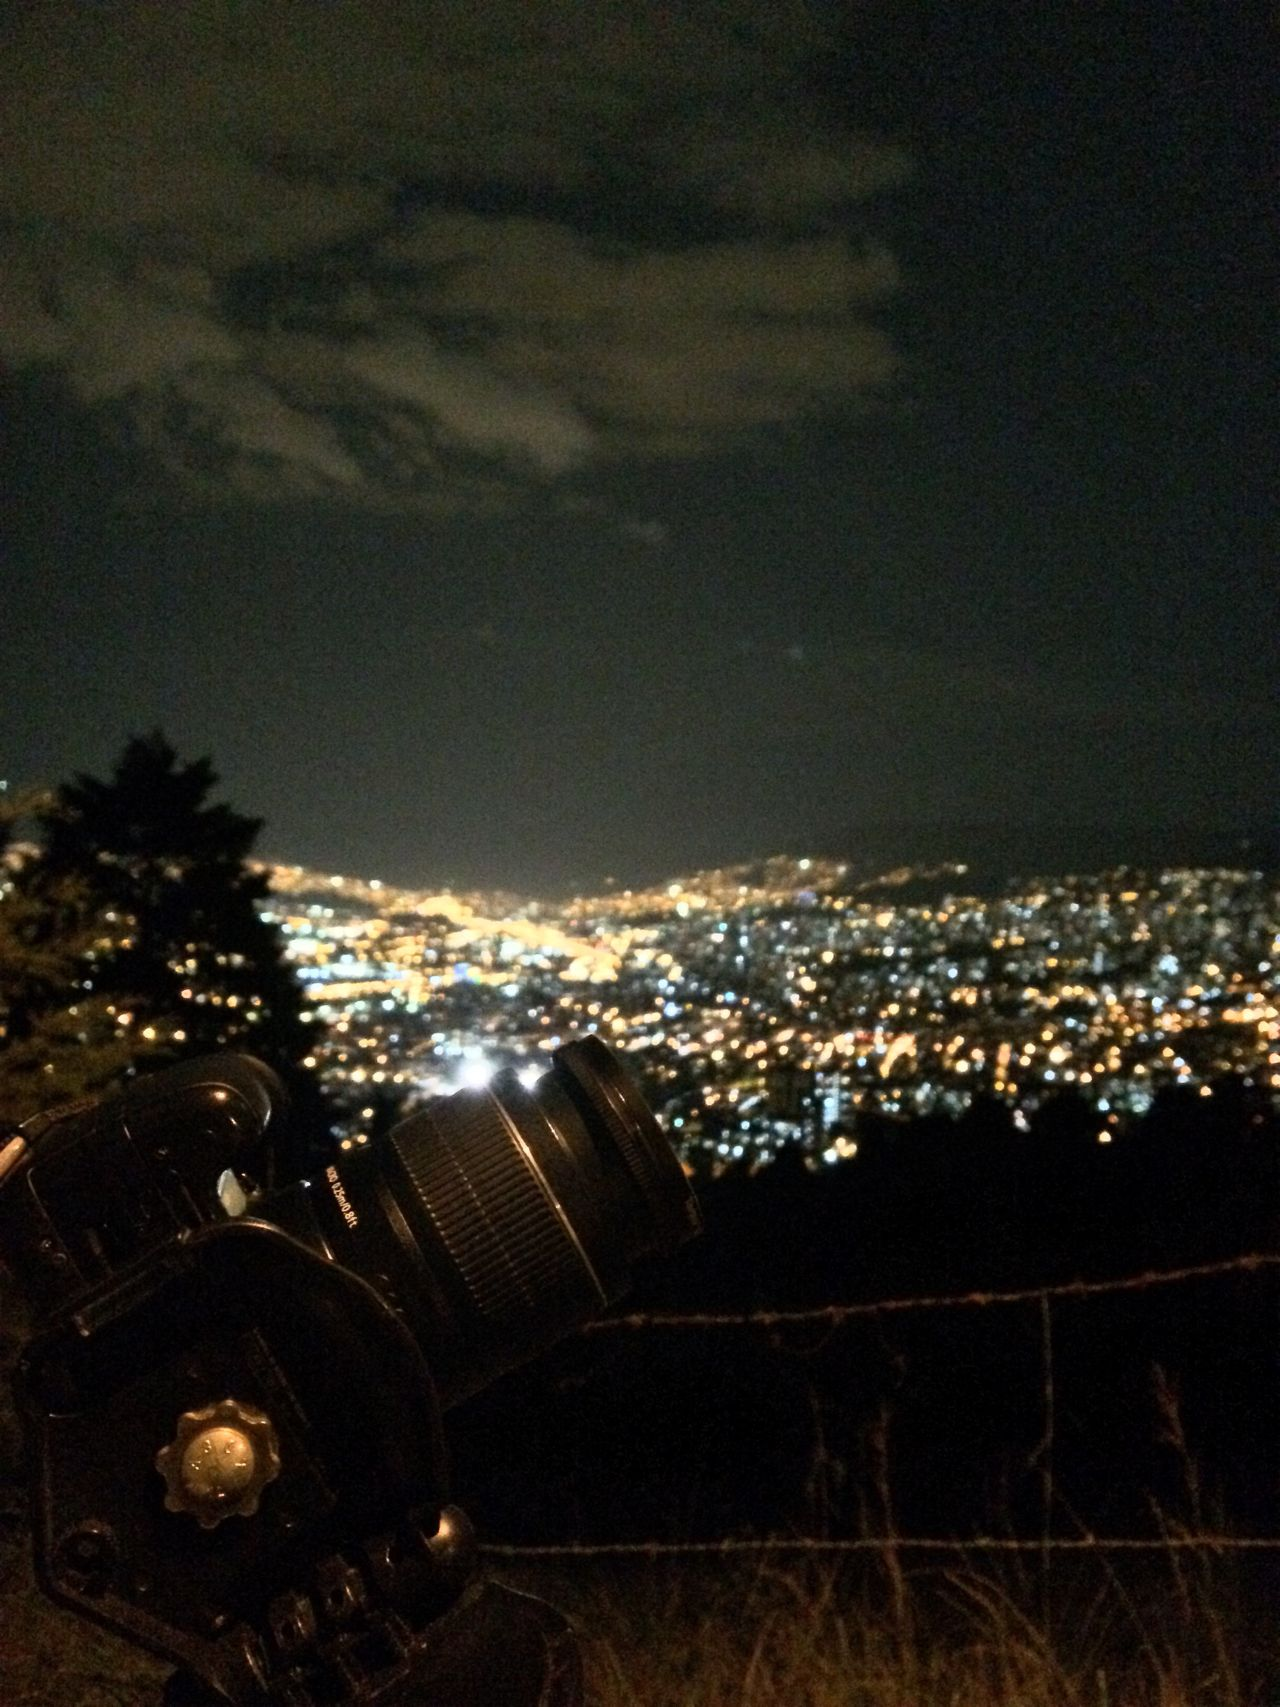 My own valley, forever Lovemedellin Lovemycity Mycity CityAtNight Cityhighlights Envigado